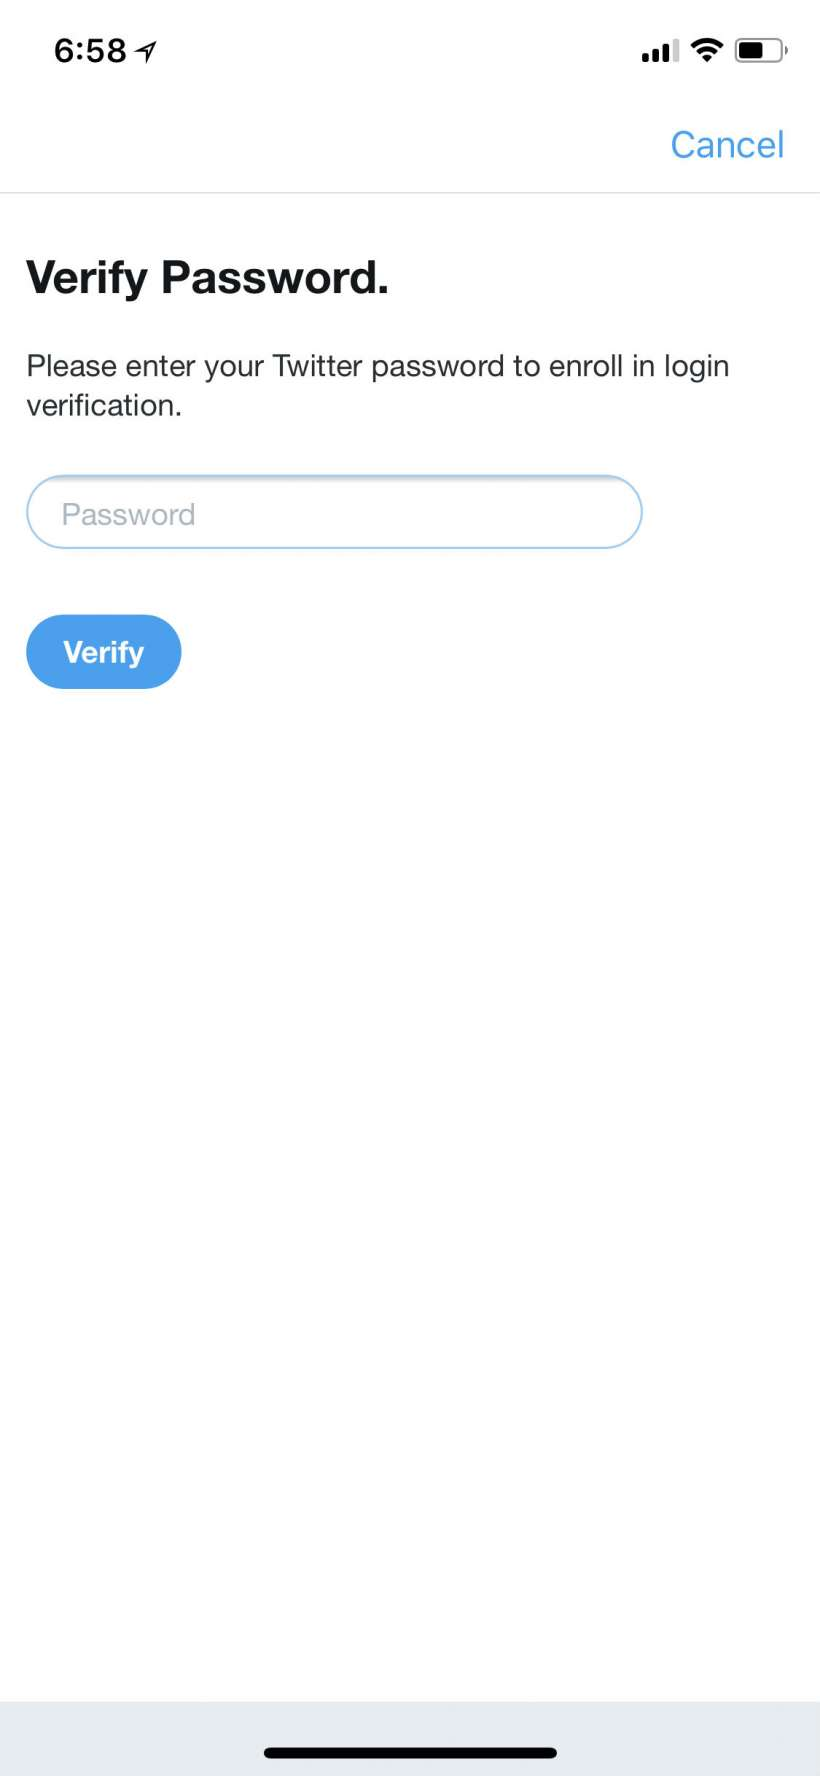 How to change your Twitter password and activate login verification.